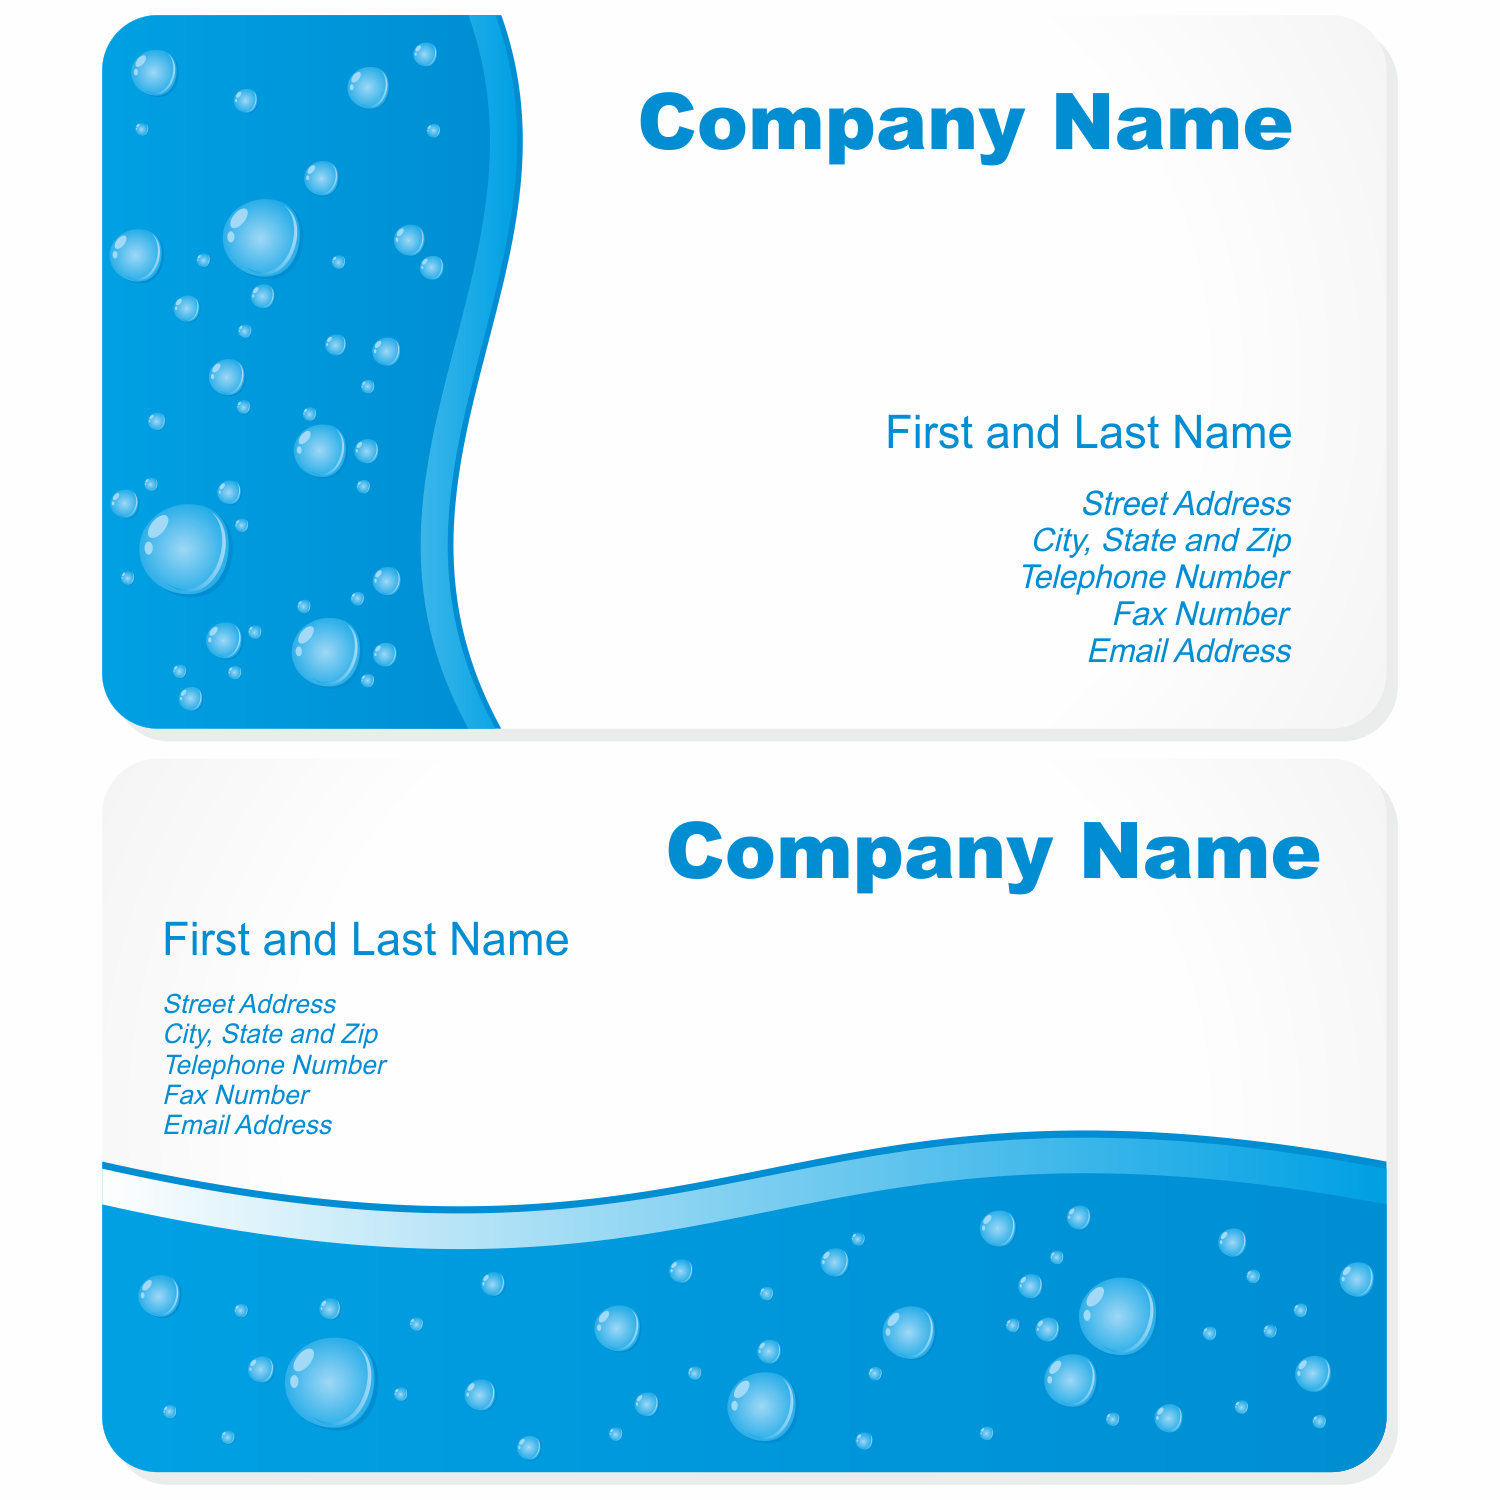 Business cards templates ai business card sample business cards templates ai cheaphphosting Image collections